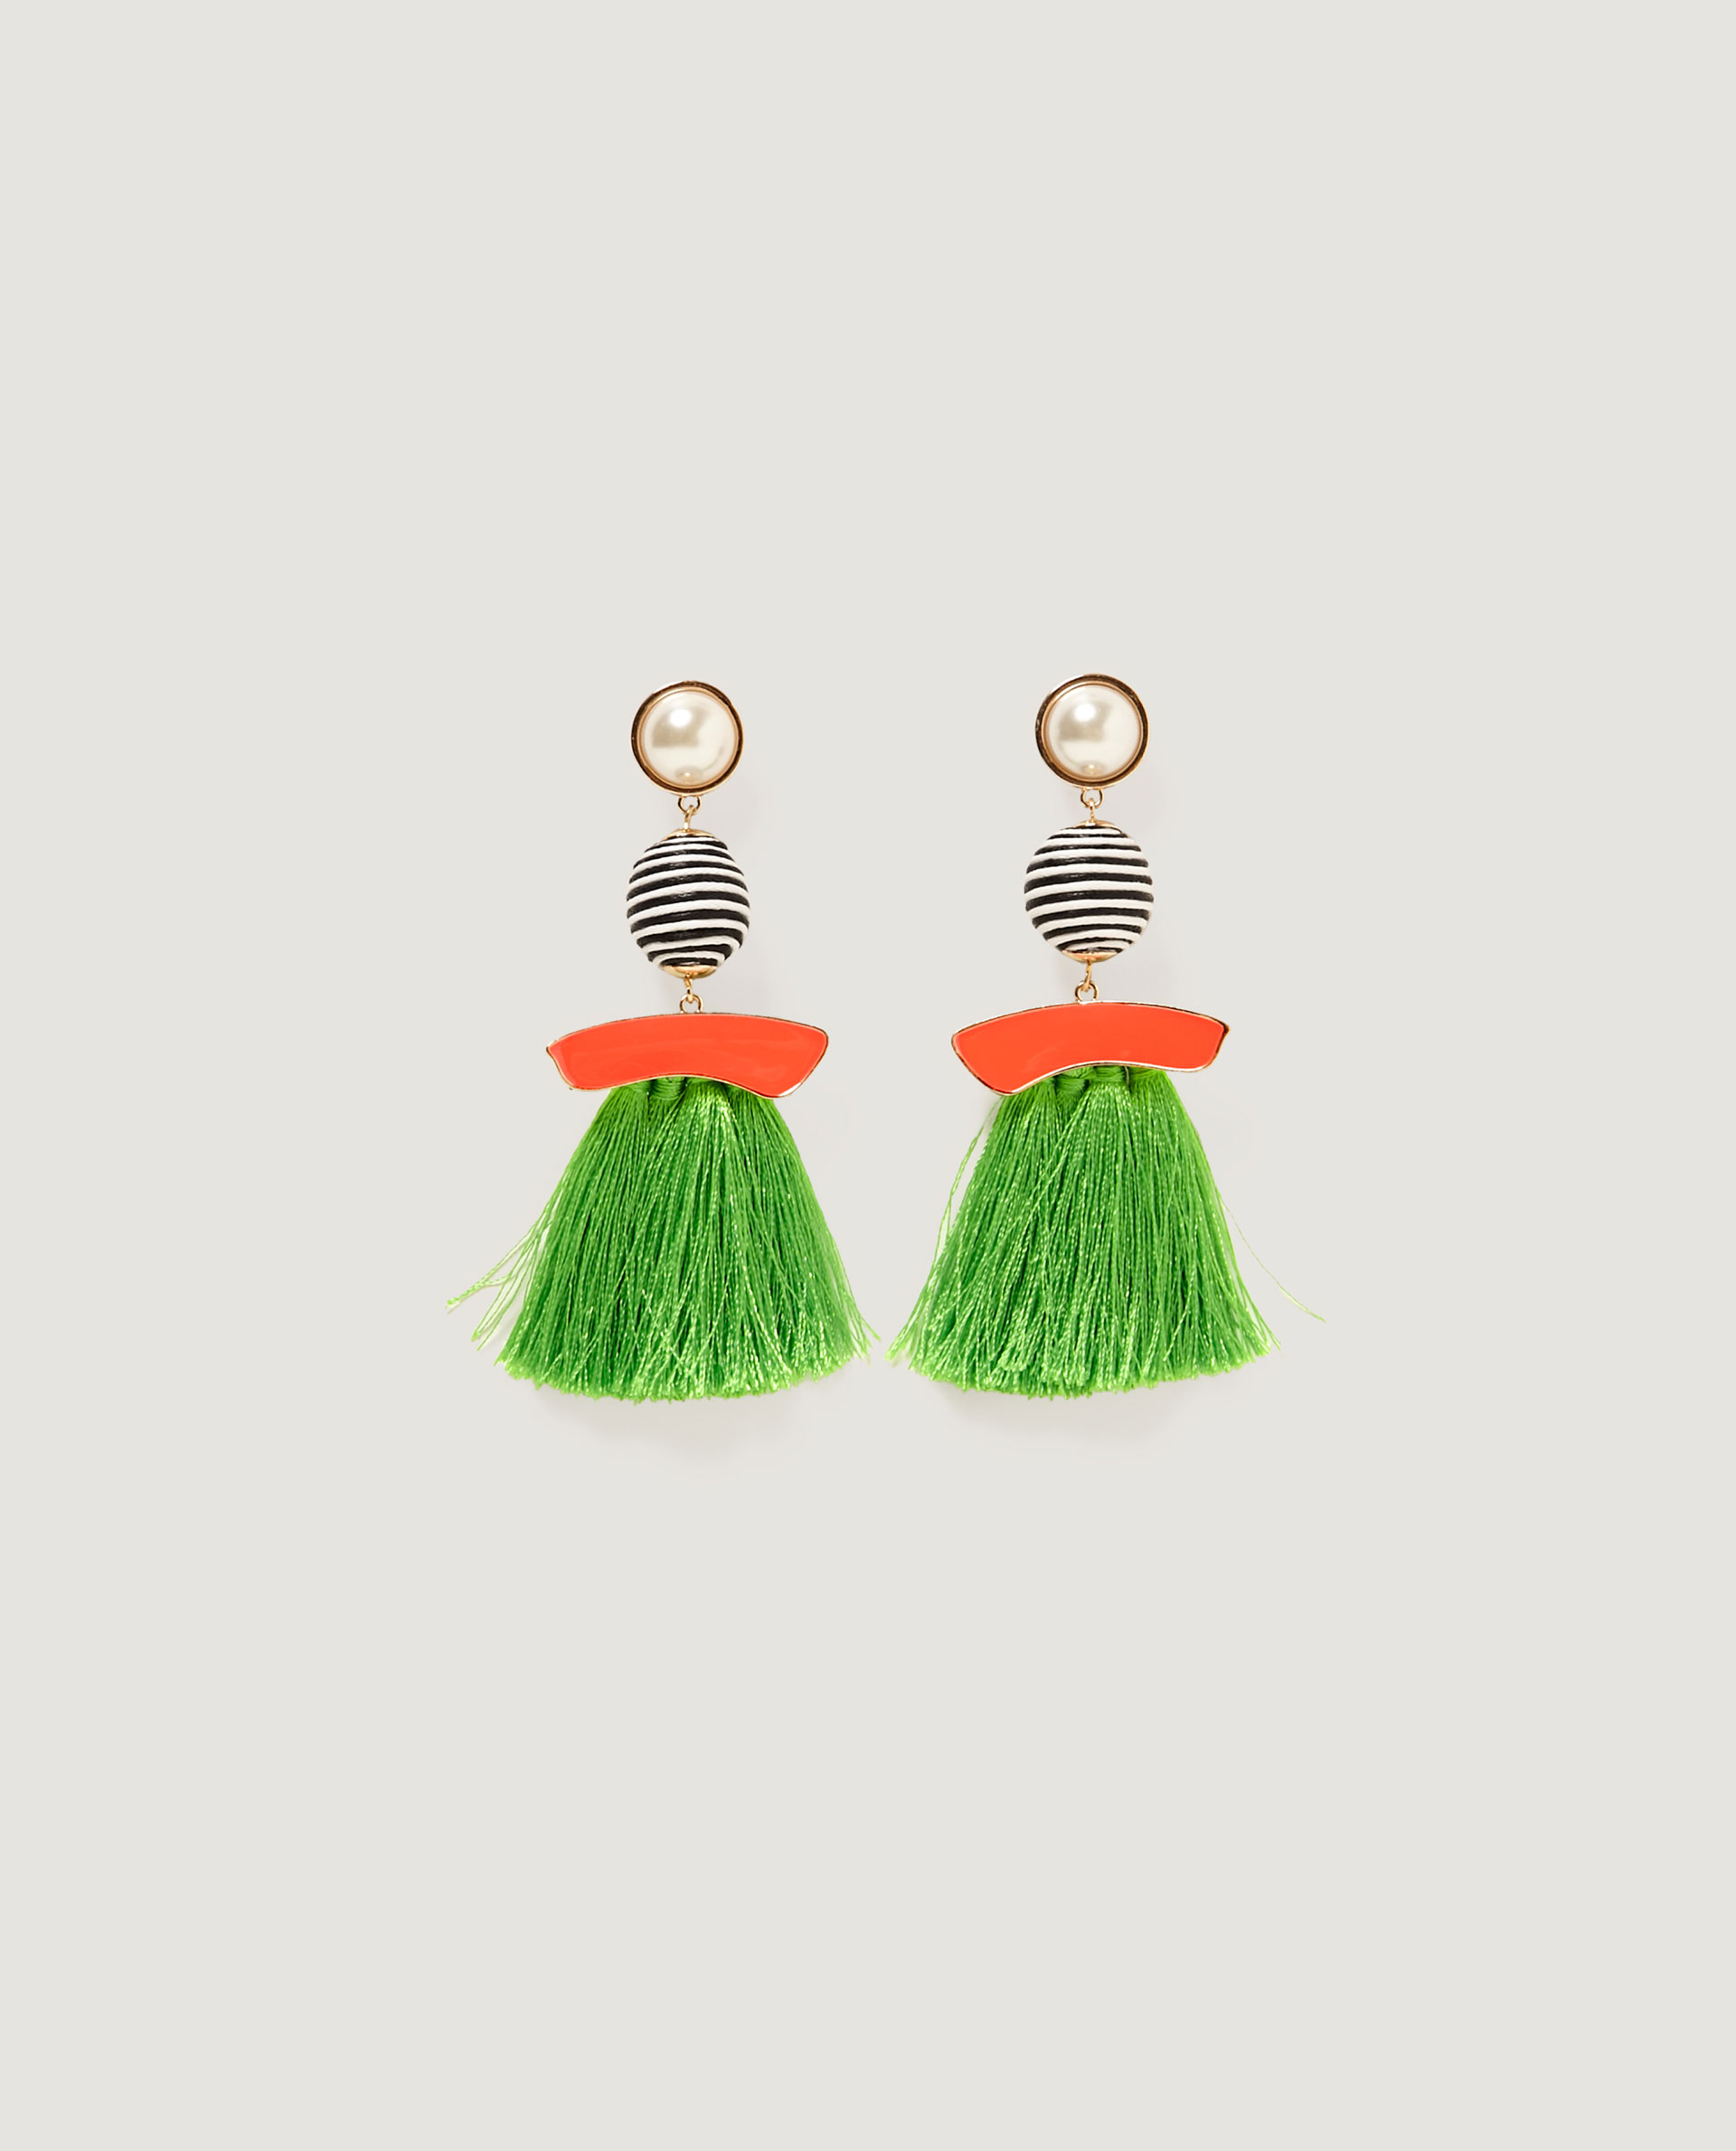 boucles d oreilles pompon orange zara on veut des boucles d 39 oreilles pompons elle. Black Bedroom Furniture Sets. Home Design Ideas